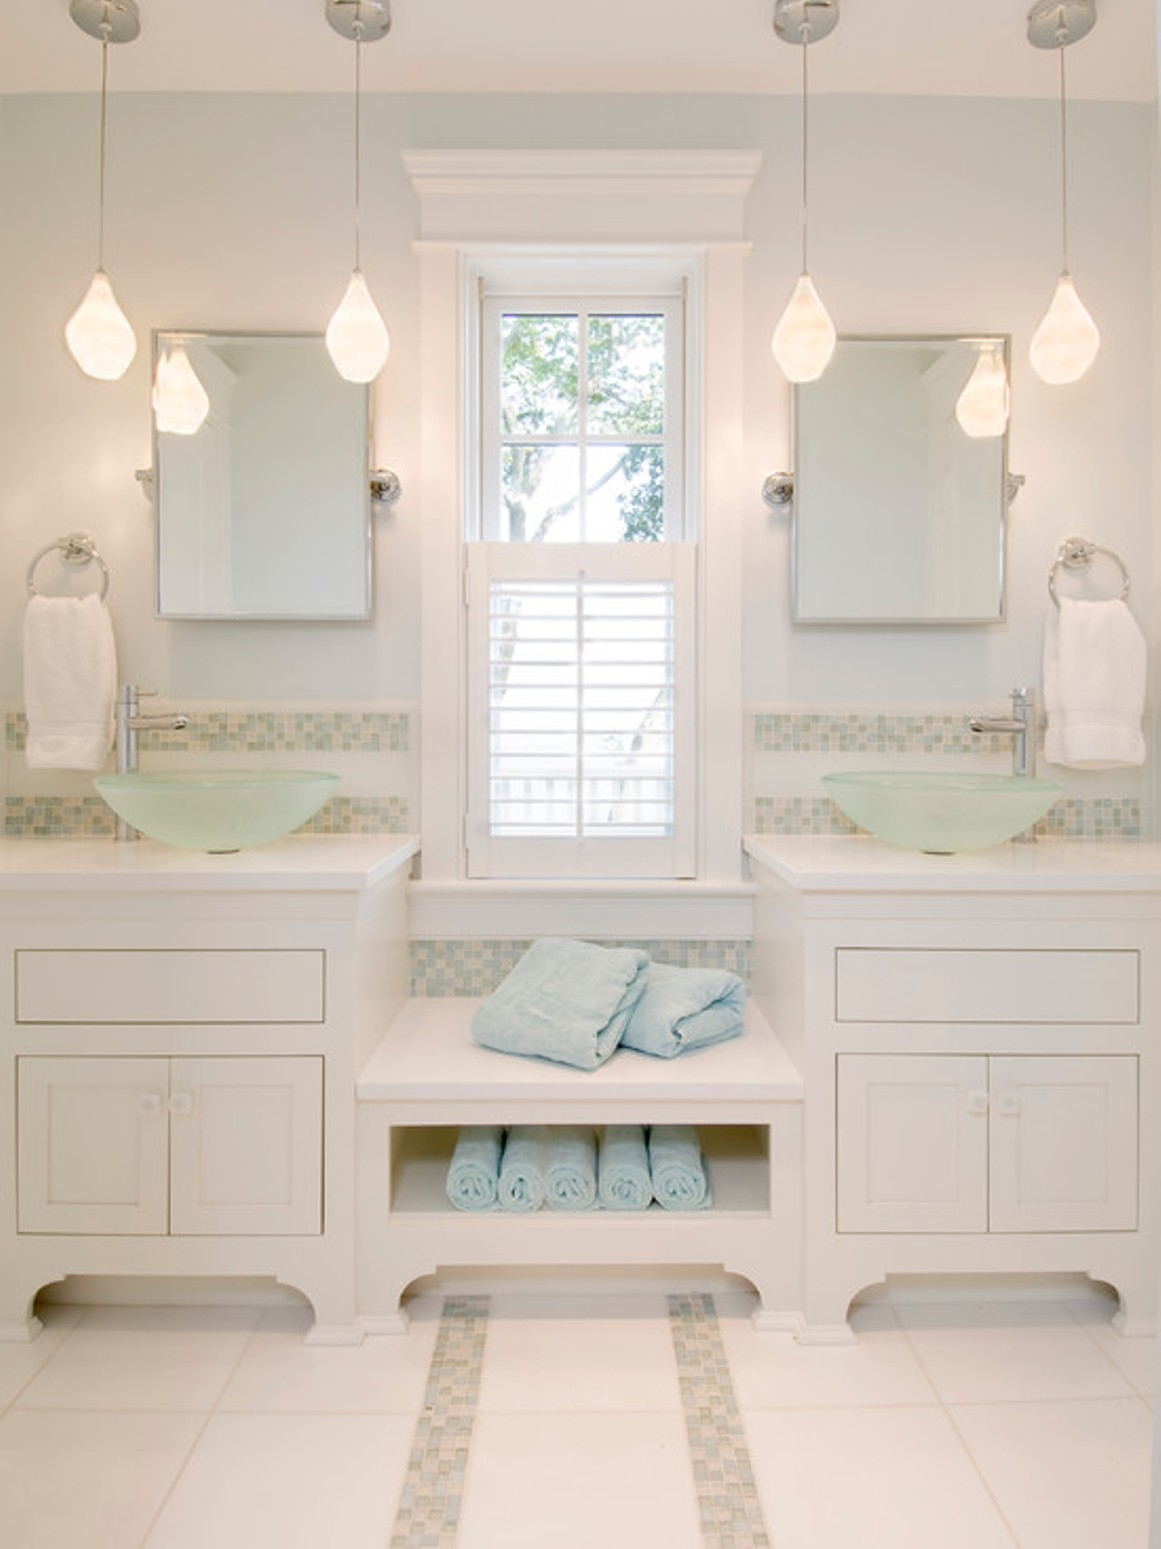 Pendant Lighting Bathroom Vanity